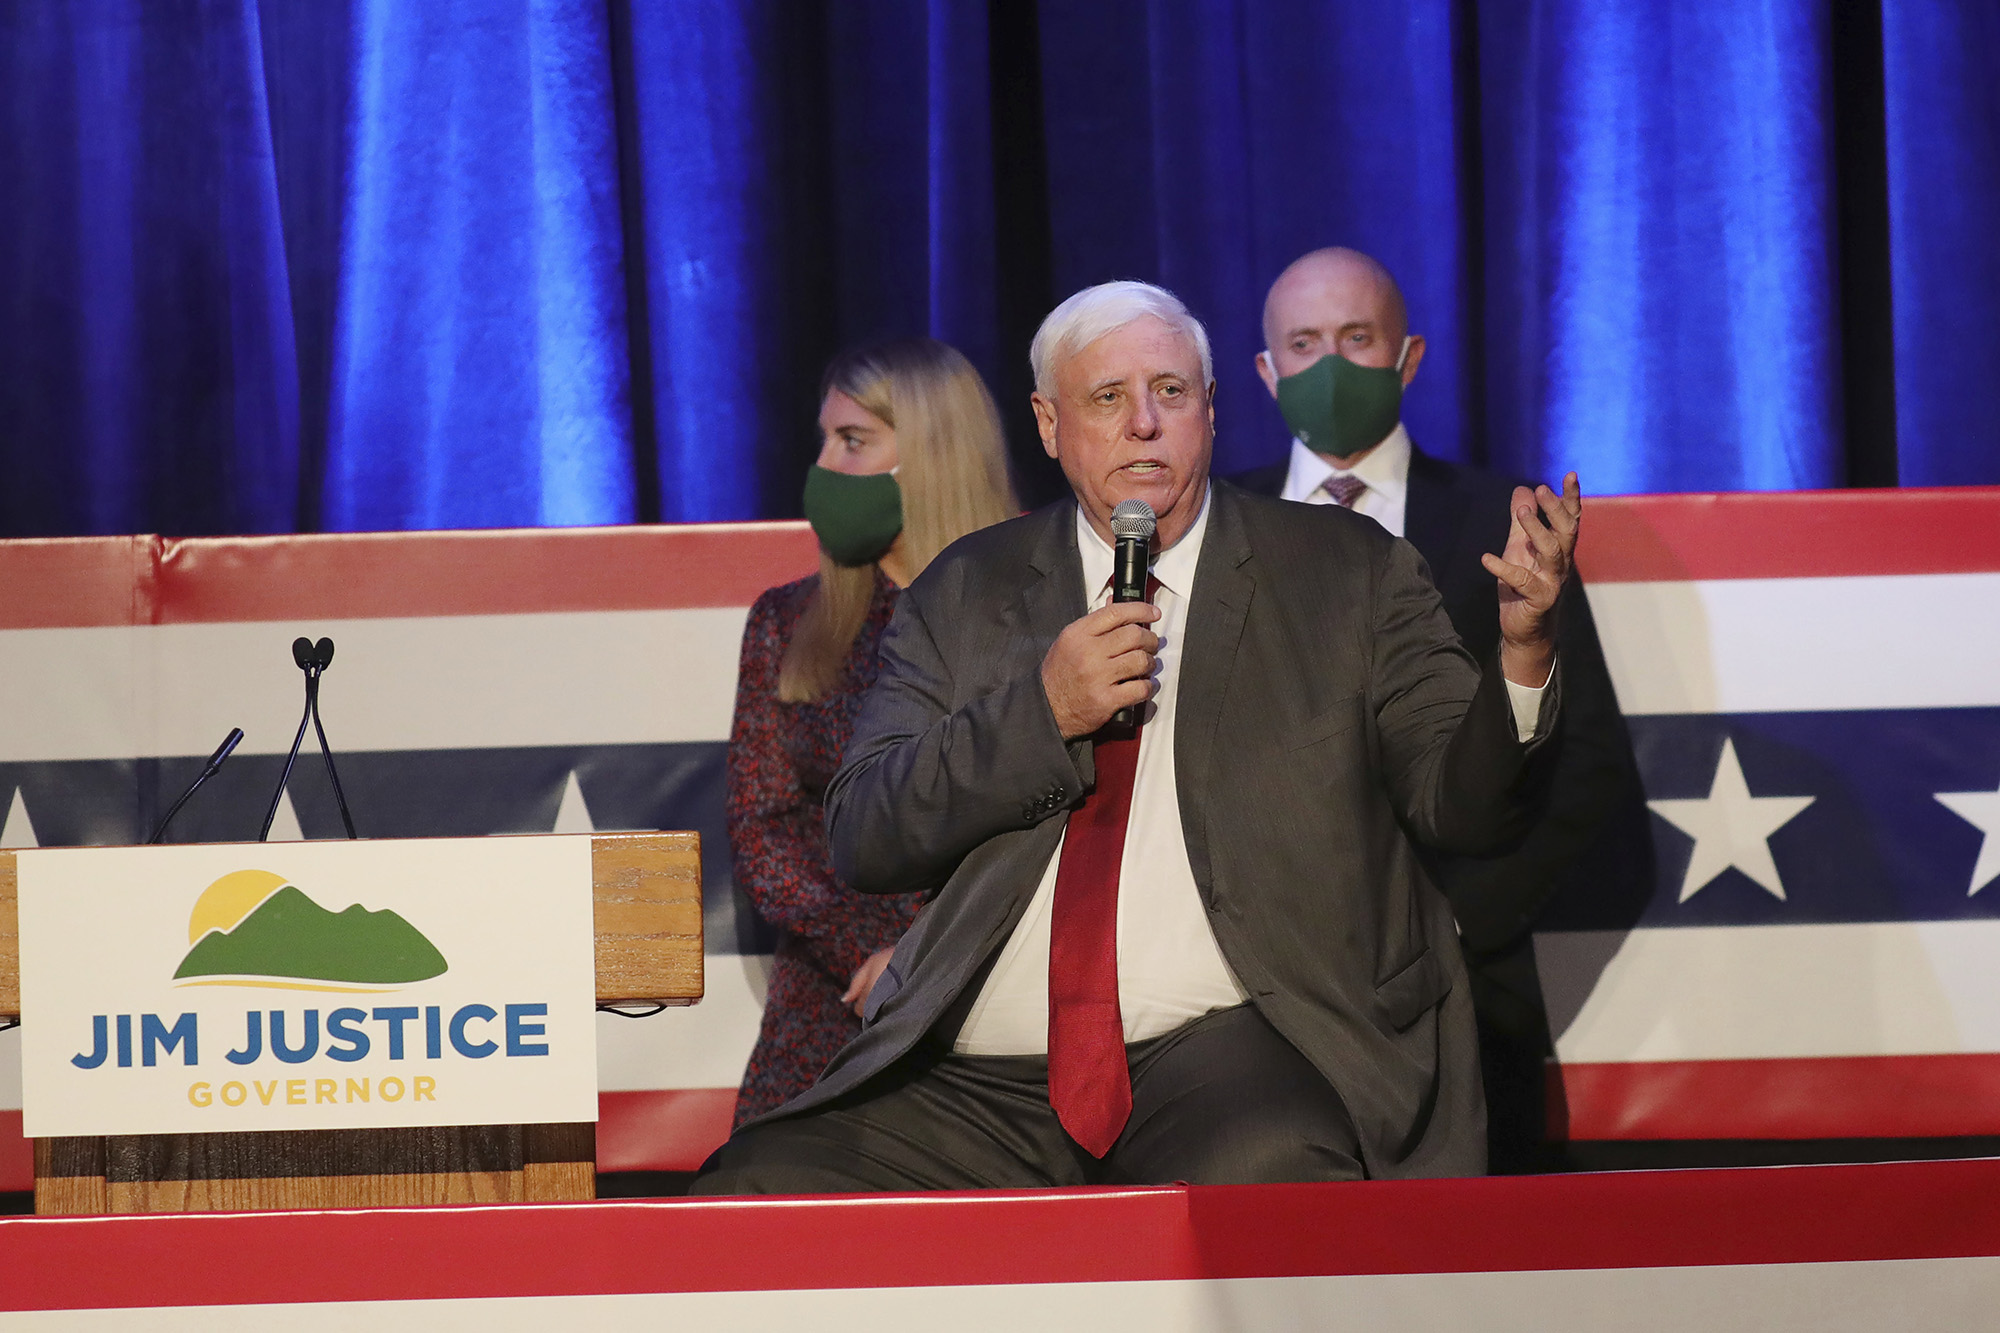 West Virginia Gov. Jim Justice celebrates his reelection at The Greenbrier Resort, on Tuesday, November 3, in White Sulphur Springs, West Virginia.